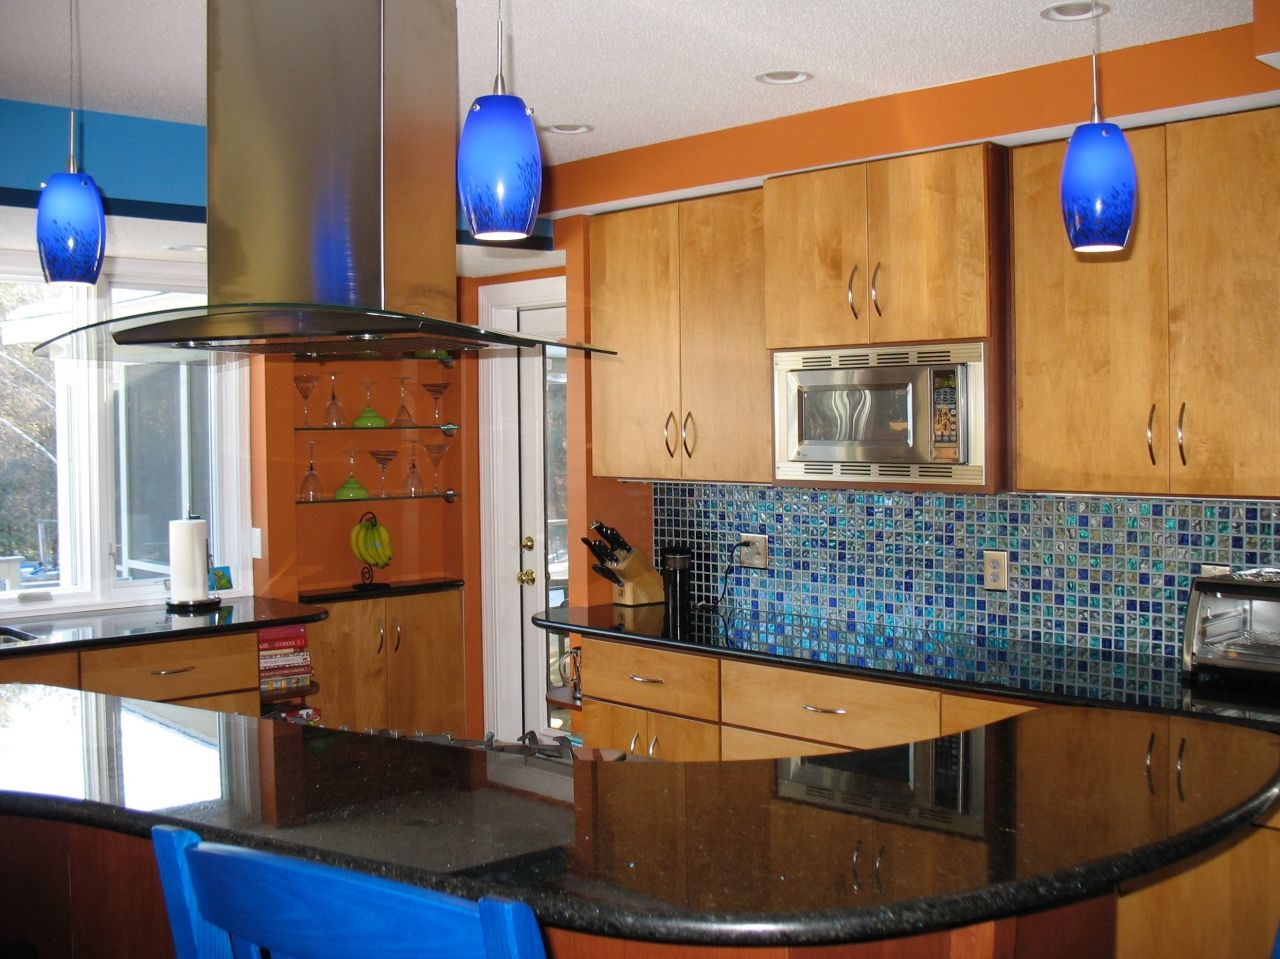 Royal Blue Barstools And Glass Pendant Lights Punctuate